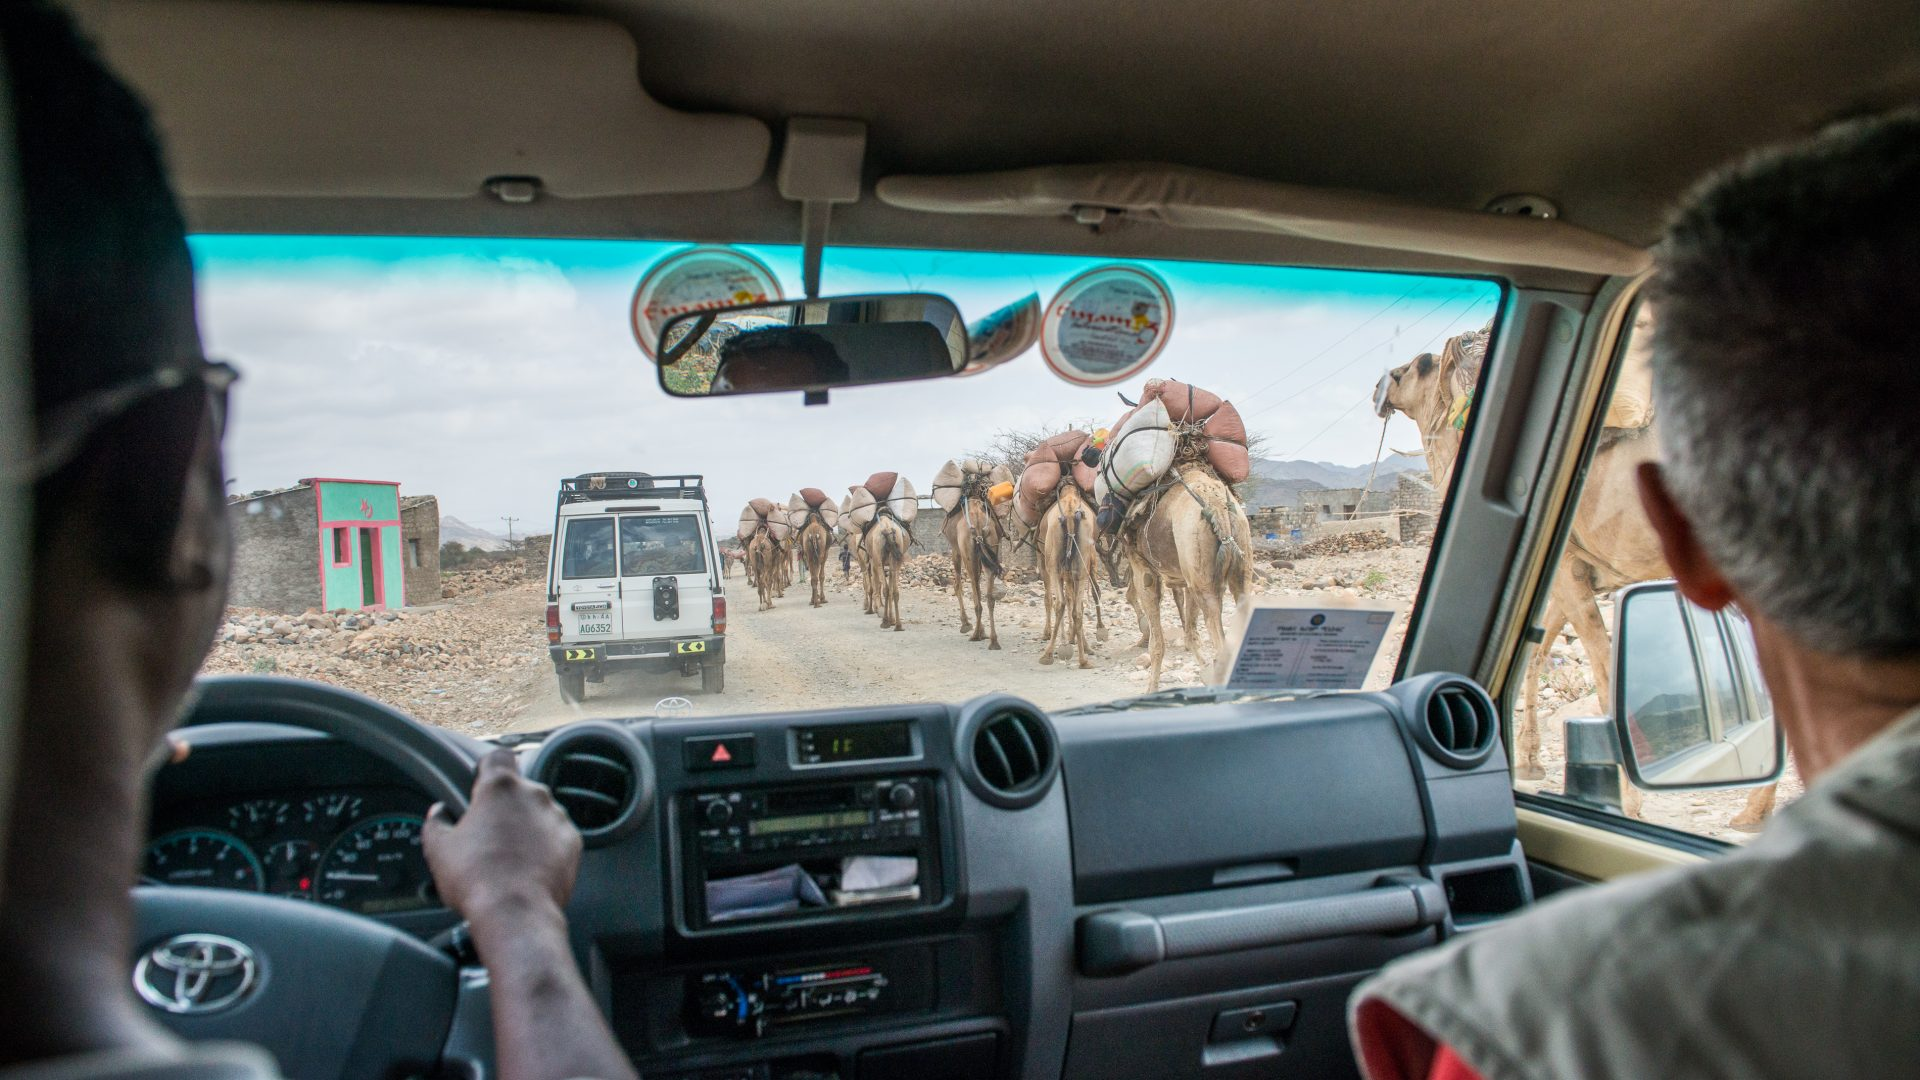 Through the window of the tourist jeep camels laden with salt can be seen making their way up the road in the Danakil Depression, Ethiopia.